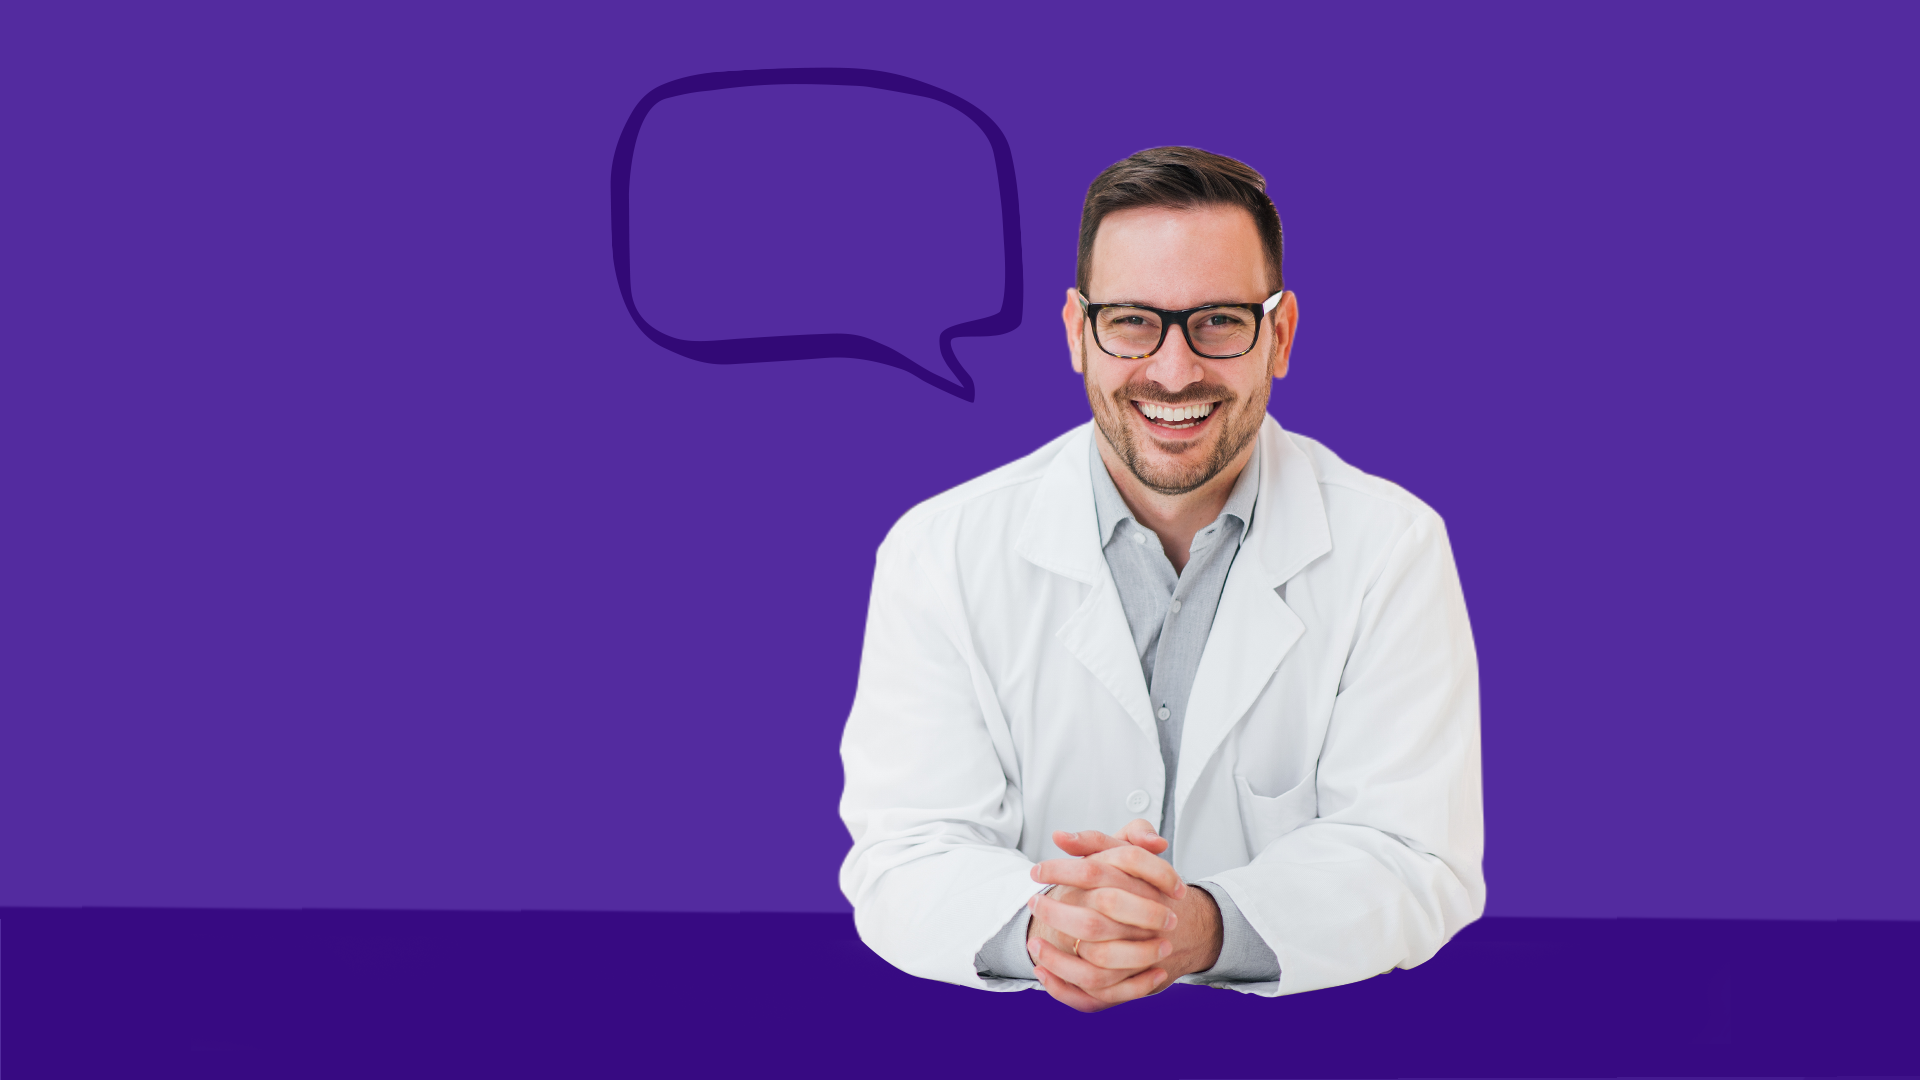 How pharmacists can promote men's health